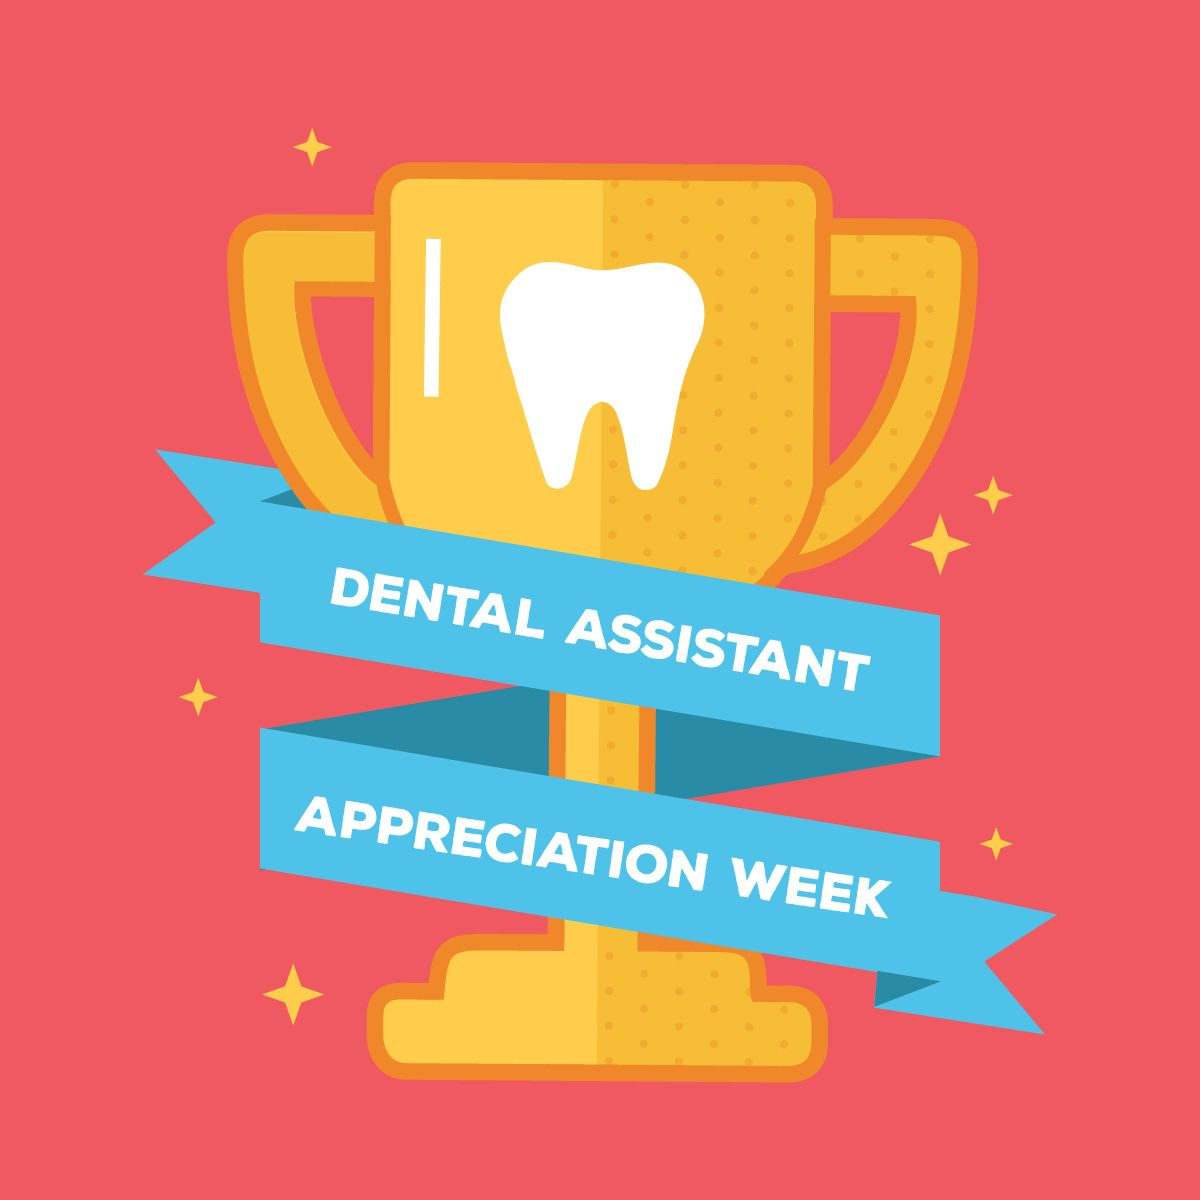 IT'S DENTAL ASSISTANT APPRECIATION WEEK! Join us in